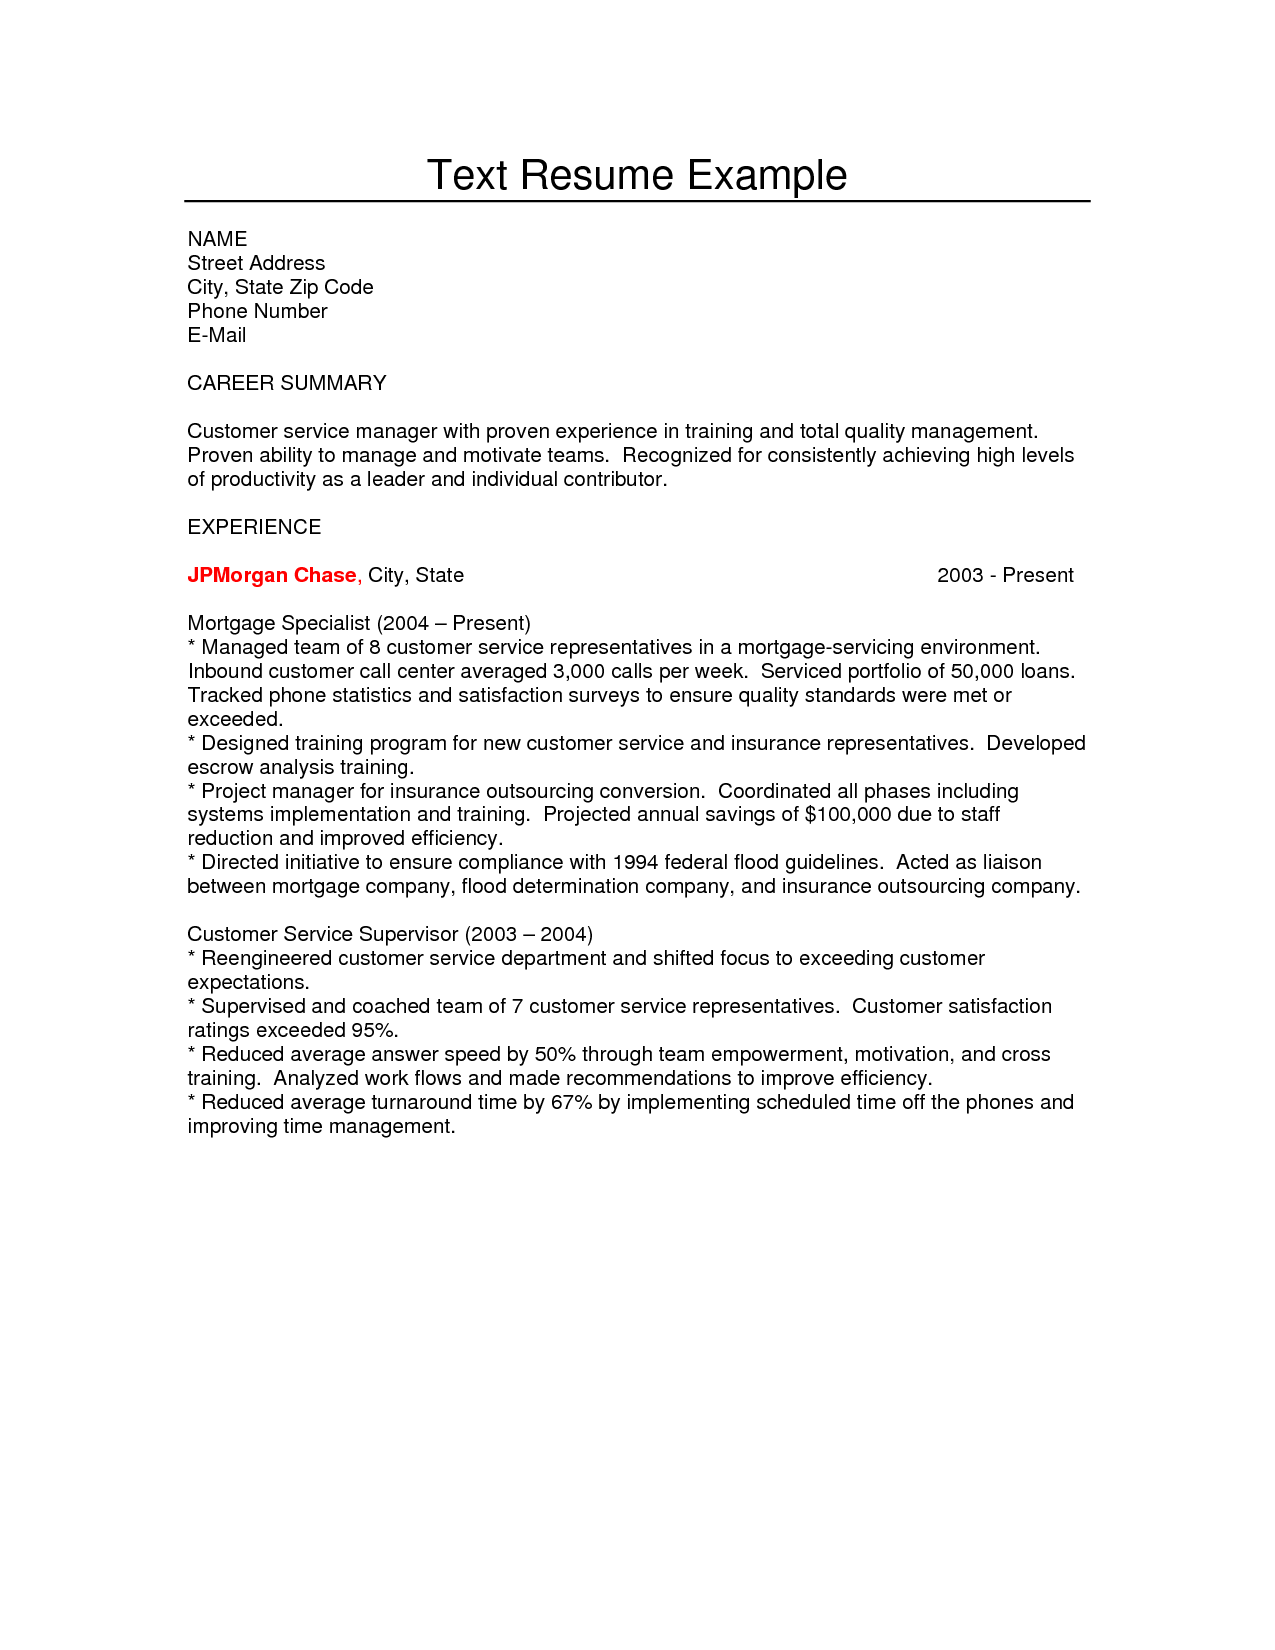 Convert to plain text resume